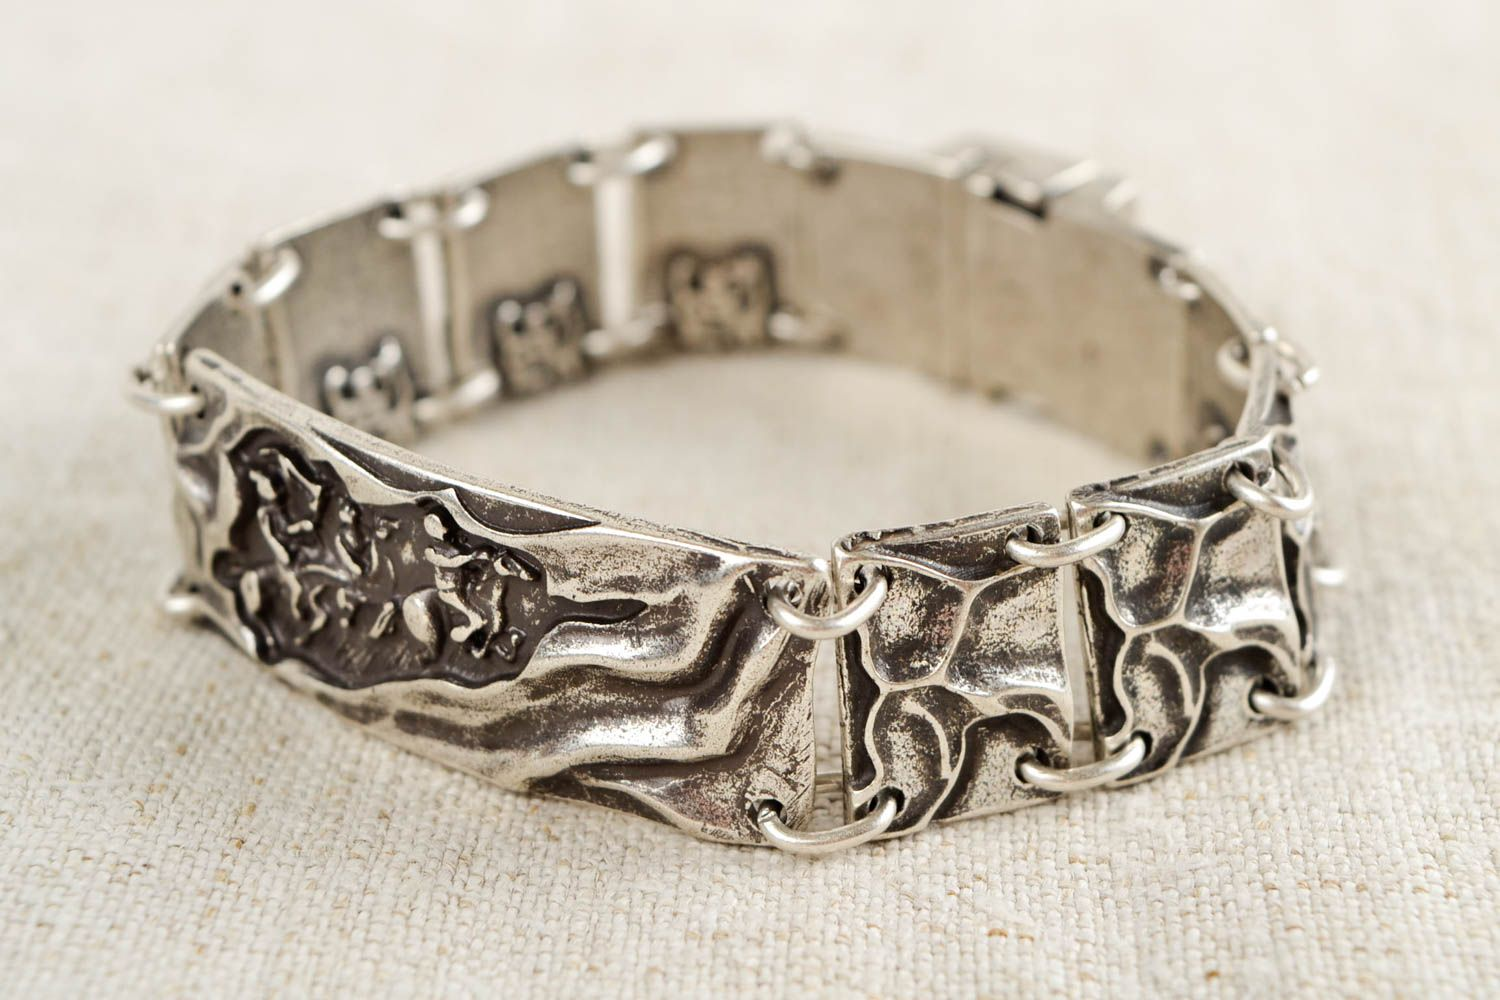 Unusual handmade metal bracelet fashion accessories for girls small gifts photo 1